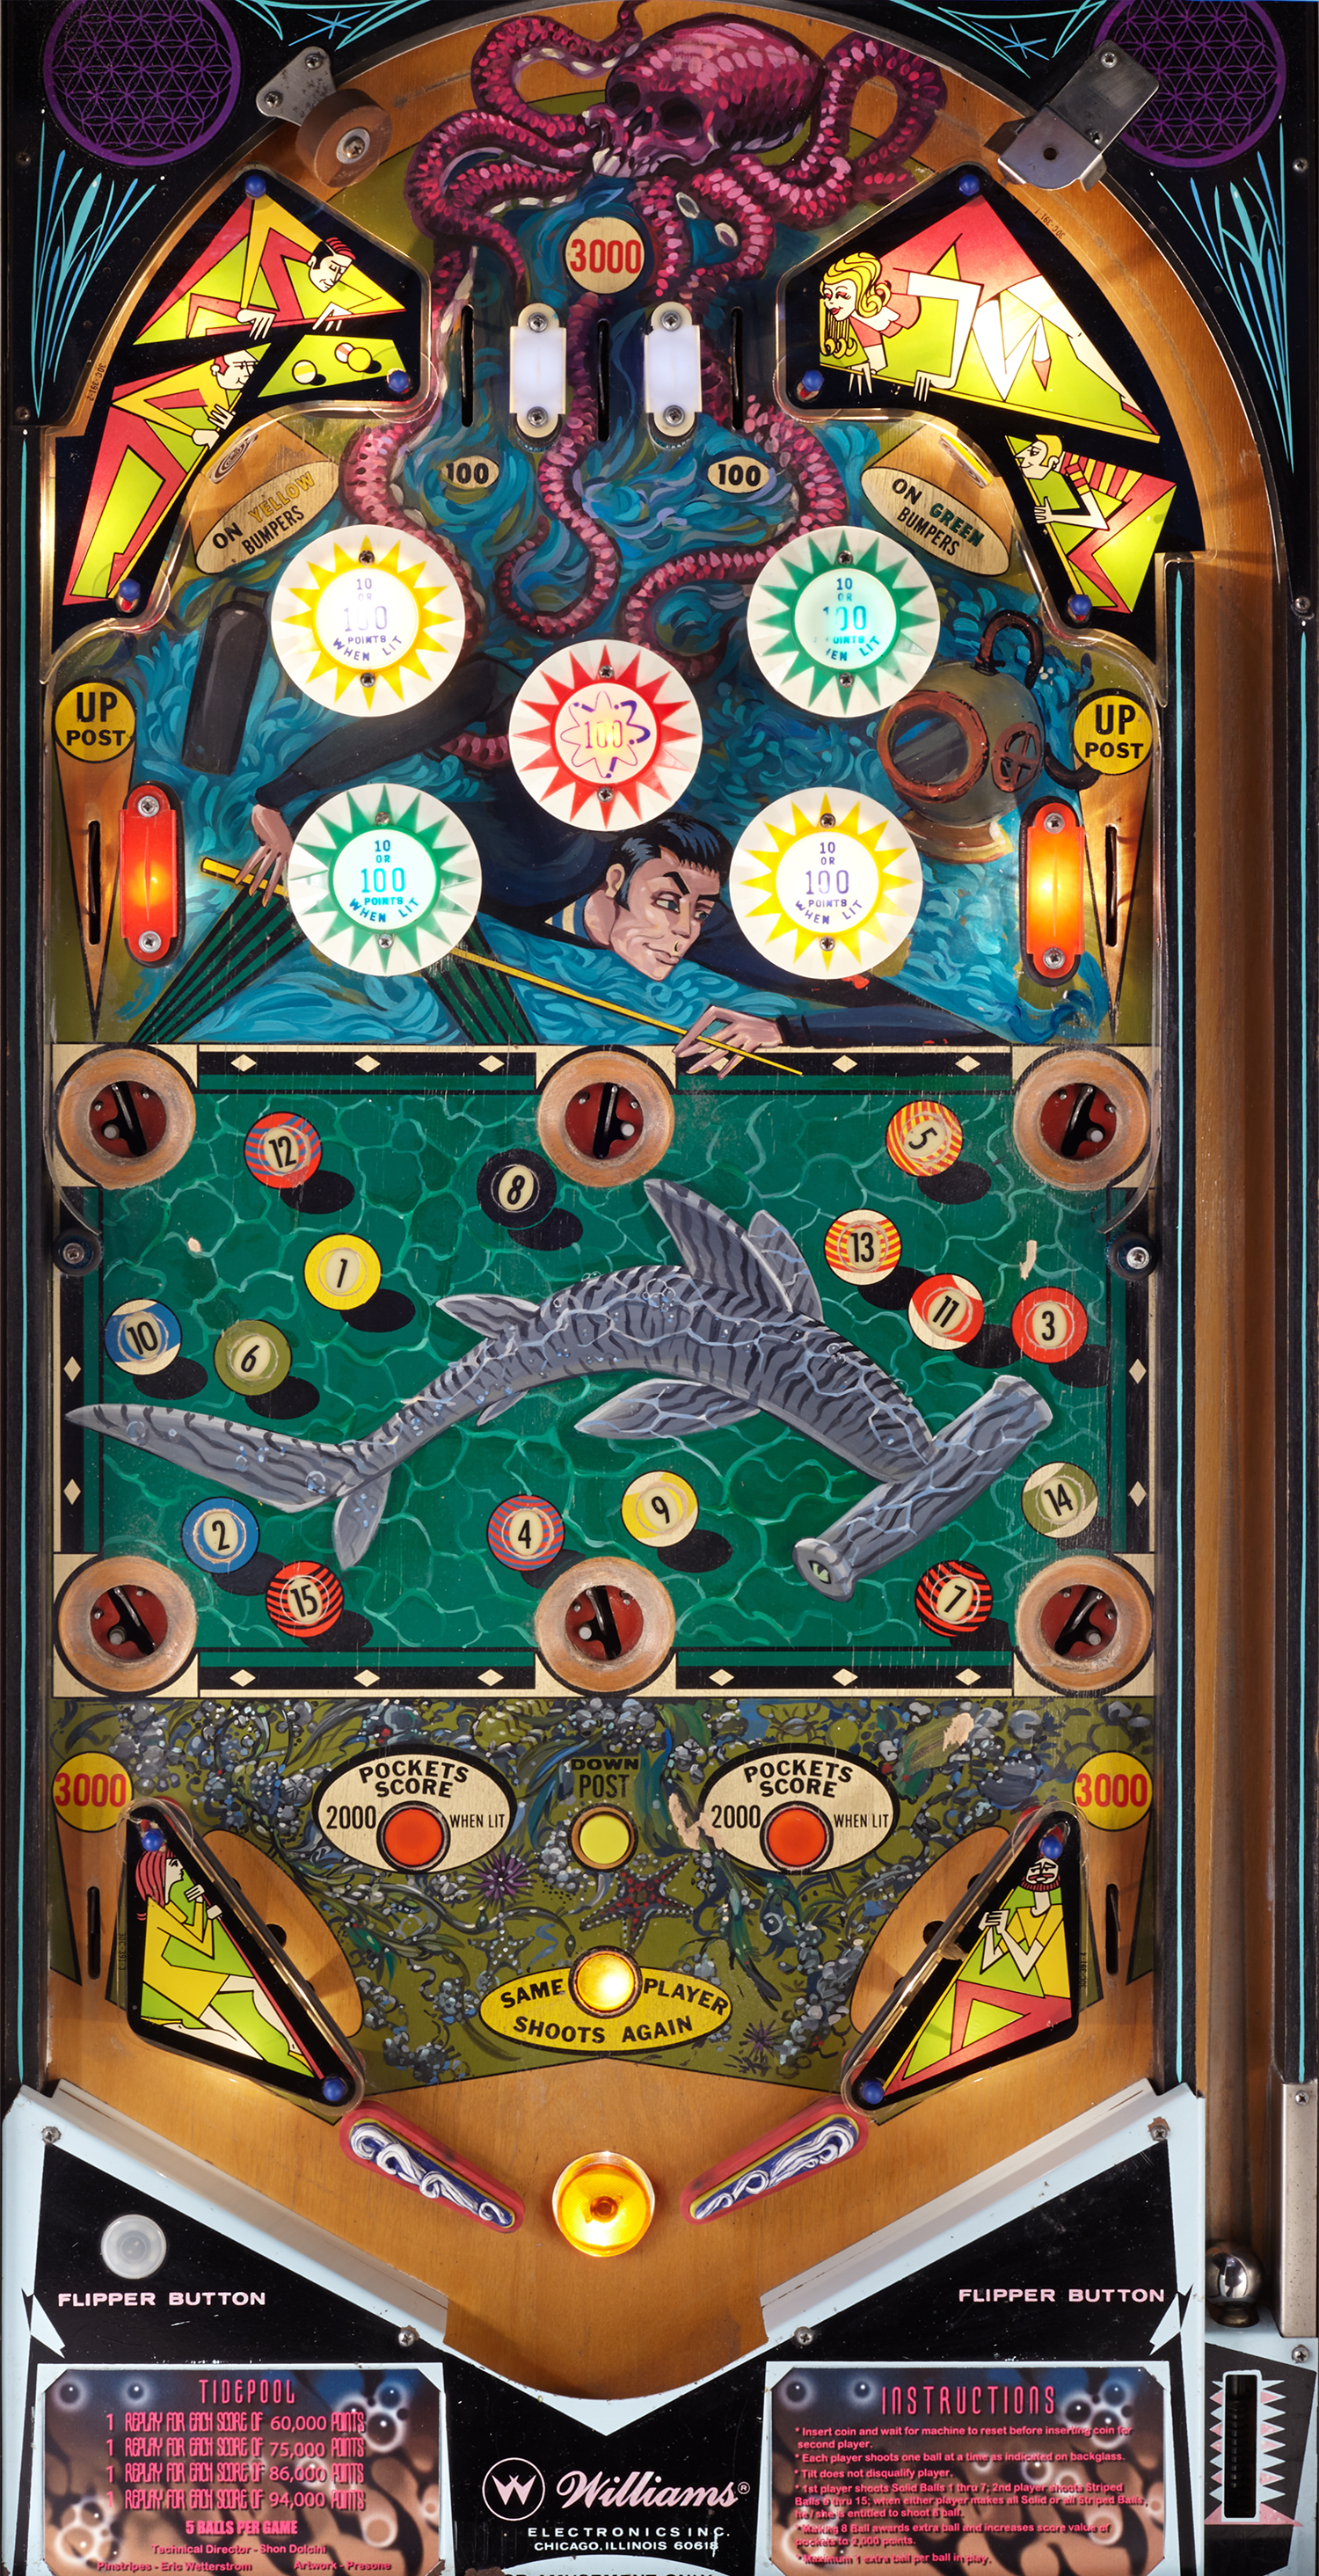 TidePool_Playfield.jpg